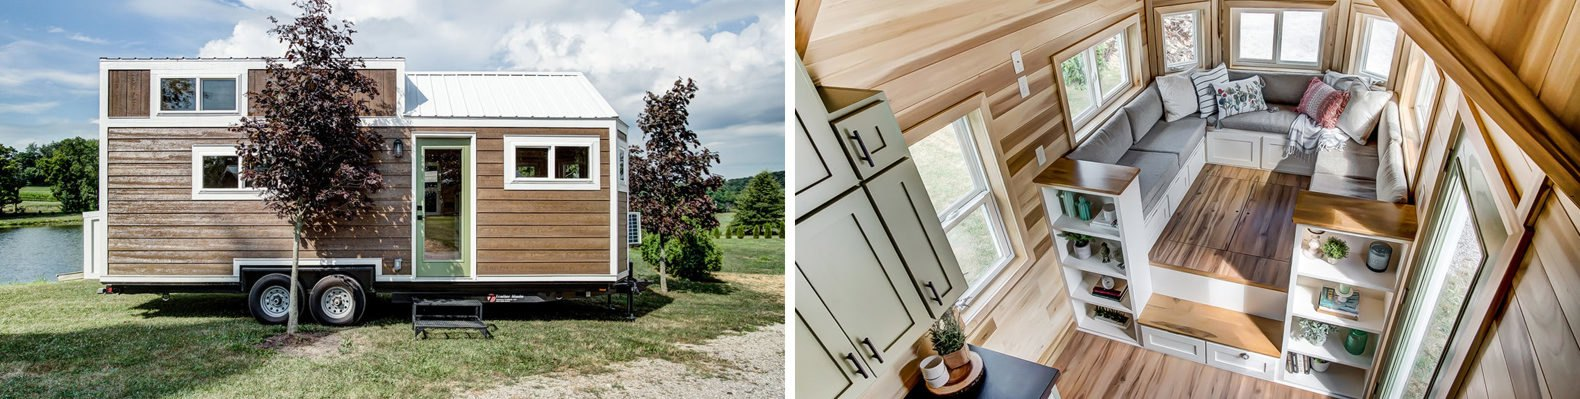 On the left, wood-sided tiny home. On the right, aerial view of the living space.